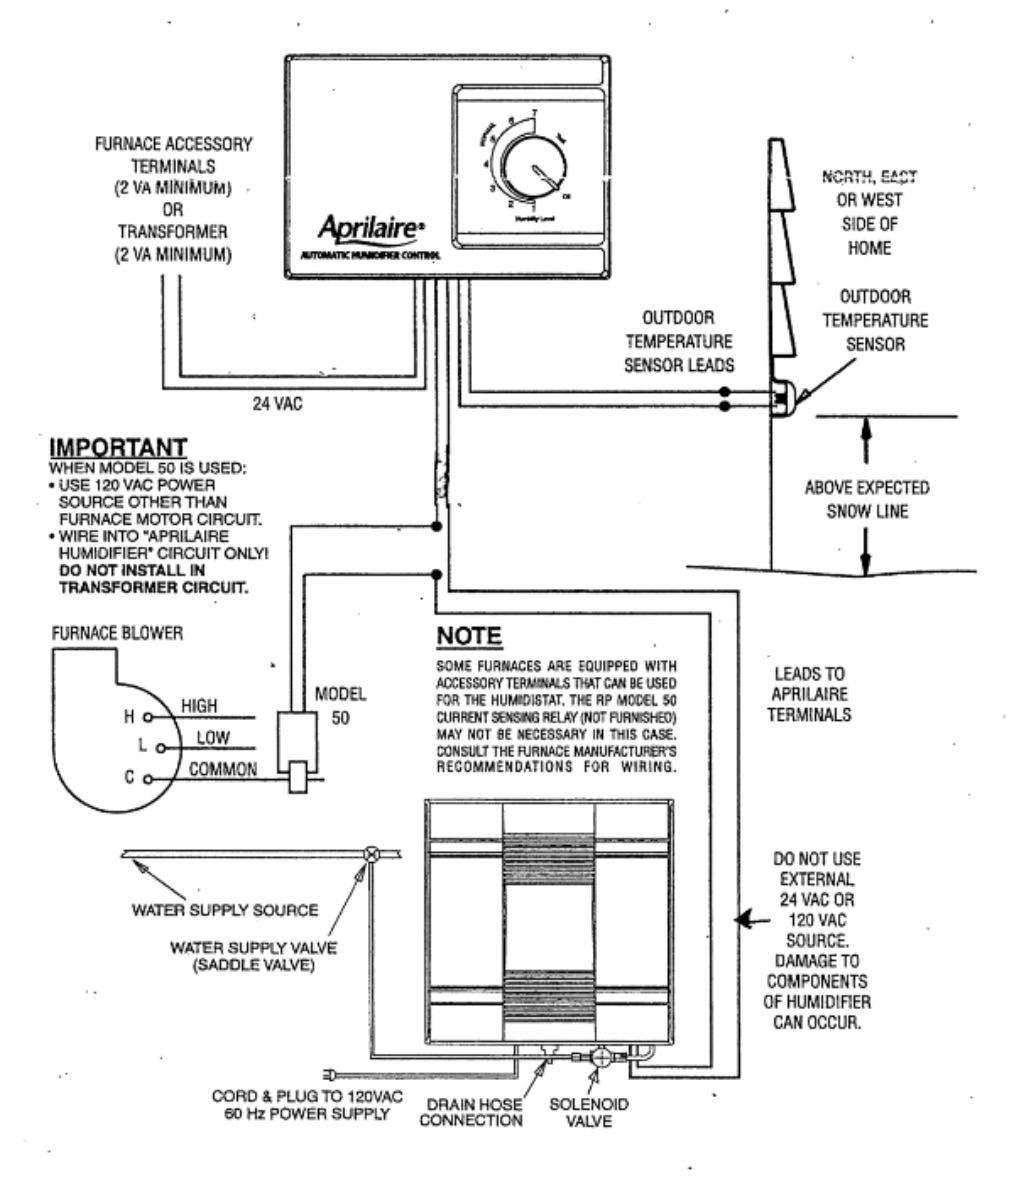 hight resolution of aprilaire 500 humidifier model 60 humidistat wiring help schematic rh aerofitness co diagram for wiring an